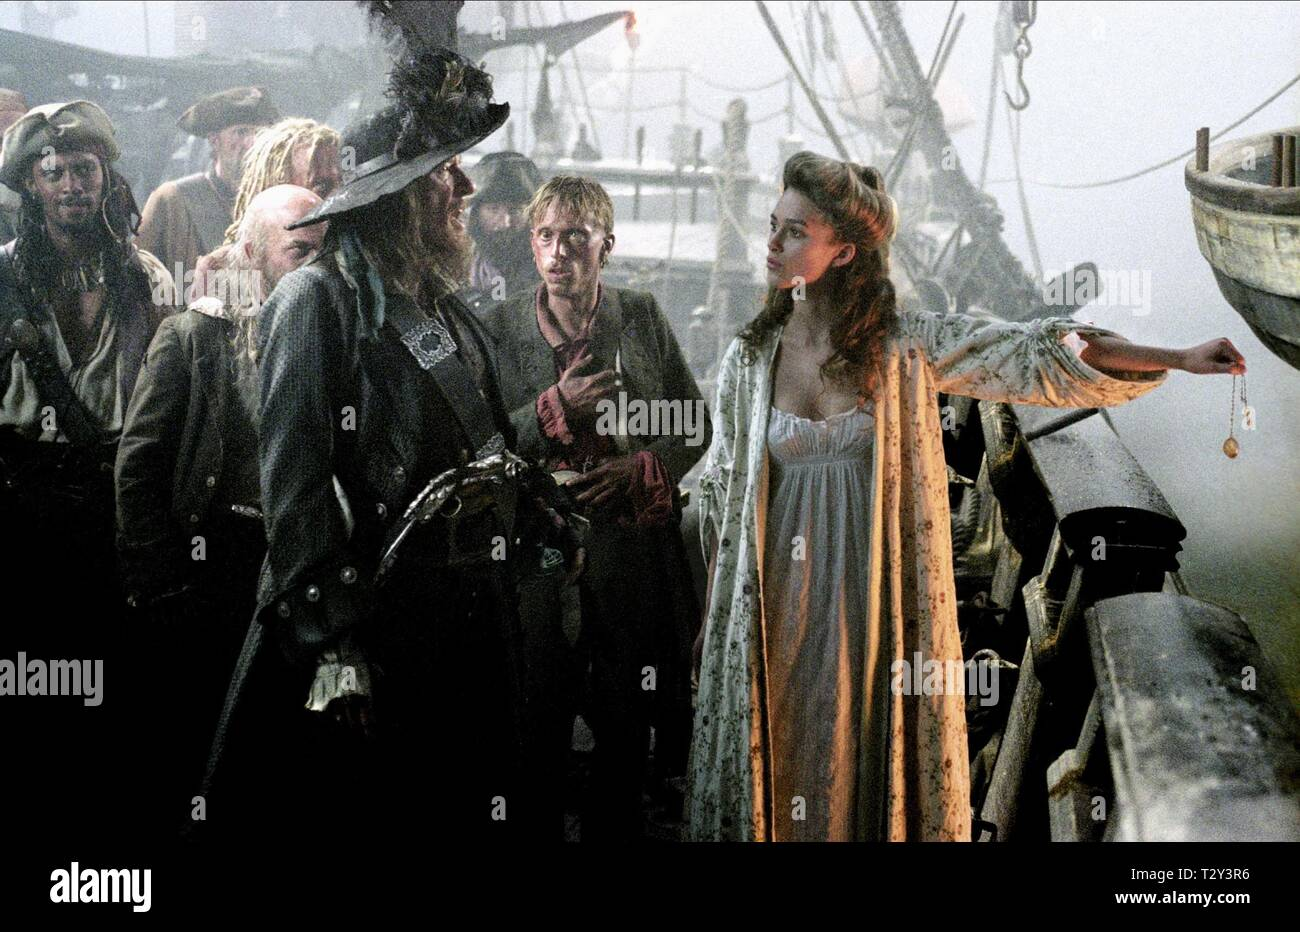 GEOFFREY RUSH, MACKENZIE CROOK, KEIRA KNIGHTLEY, PIRATES OF THE CARIBBEAN: THE CURSE OF THE BLACK PEARL, 2003 - Stock Image